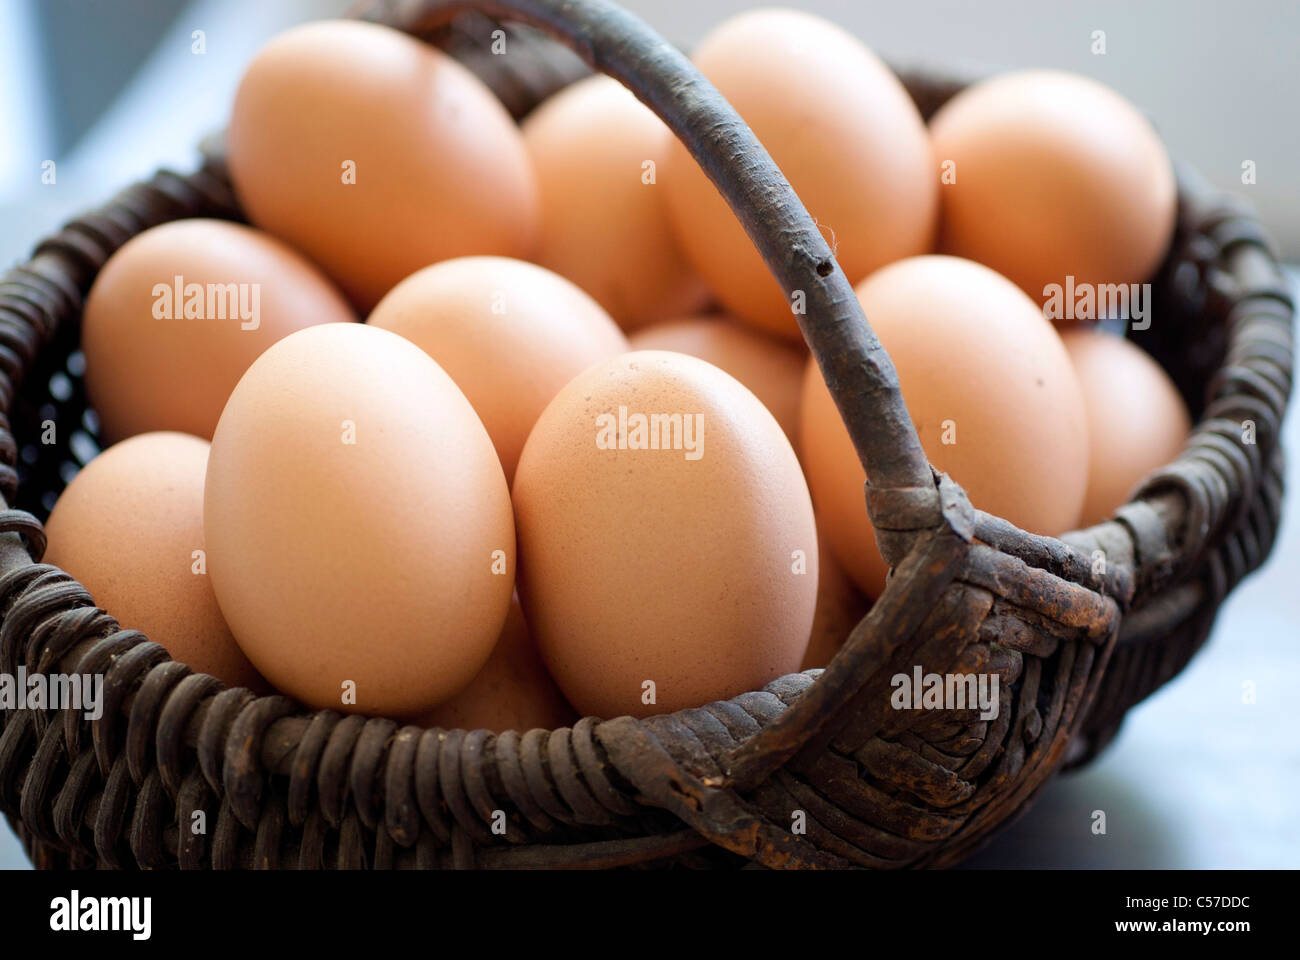 basket full of eggs on a wooden table - Stock Image